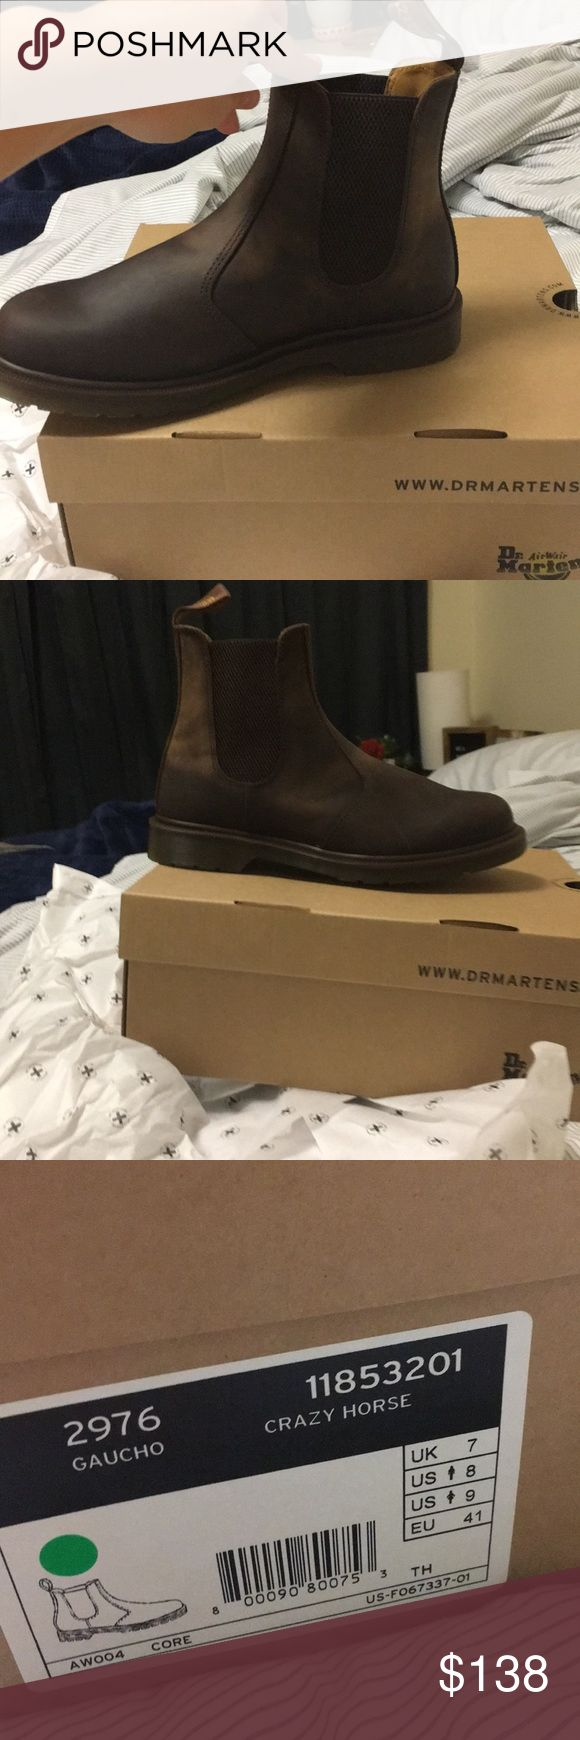 Dr. Martens Chelsea boot. Brand new. I love these, they just didn't fit. Brand new, only one shoe taken out. Sell for 145 online, just trying to get my money back. Price fair and firm. UK 7, women's 9. Dr. Martens Shoes Ankle Boots & Booties